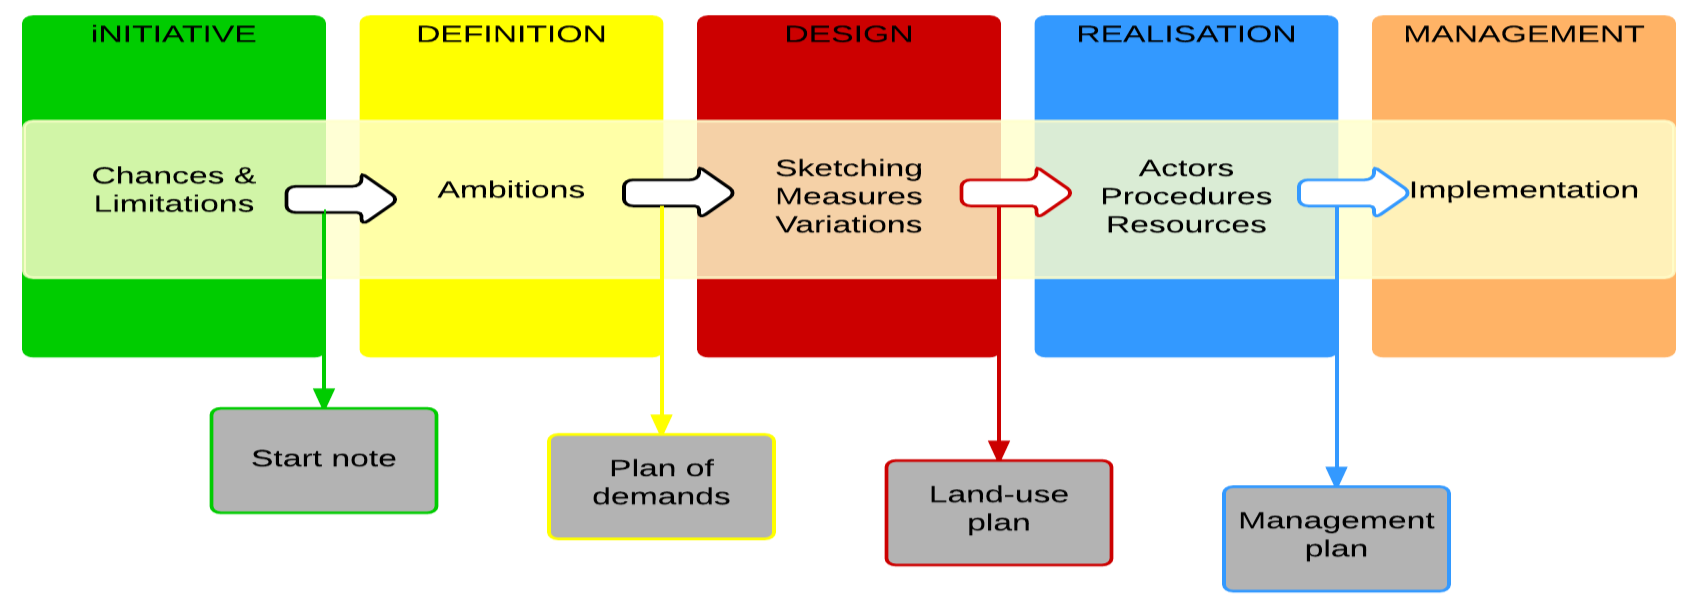 15 Researching the Added Value of Planning Support Systems in the Spatial Planning Process Eikelboom & Janssen (2013) focus on the three actual development stages (stage 3 5) because that is where